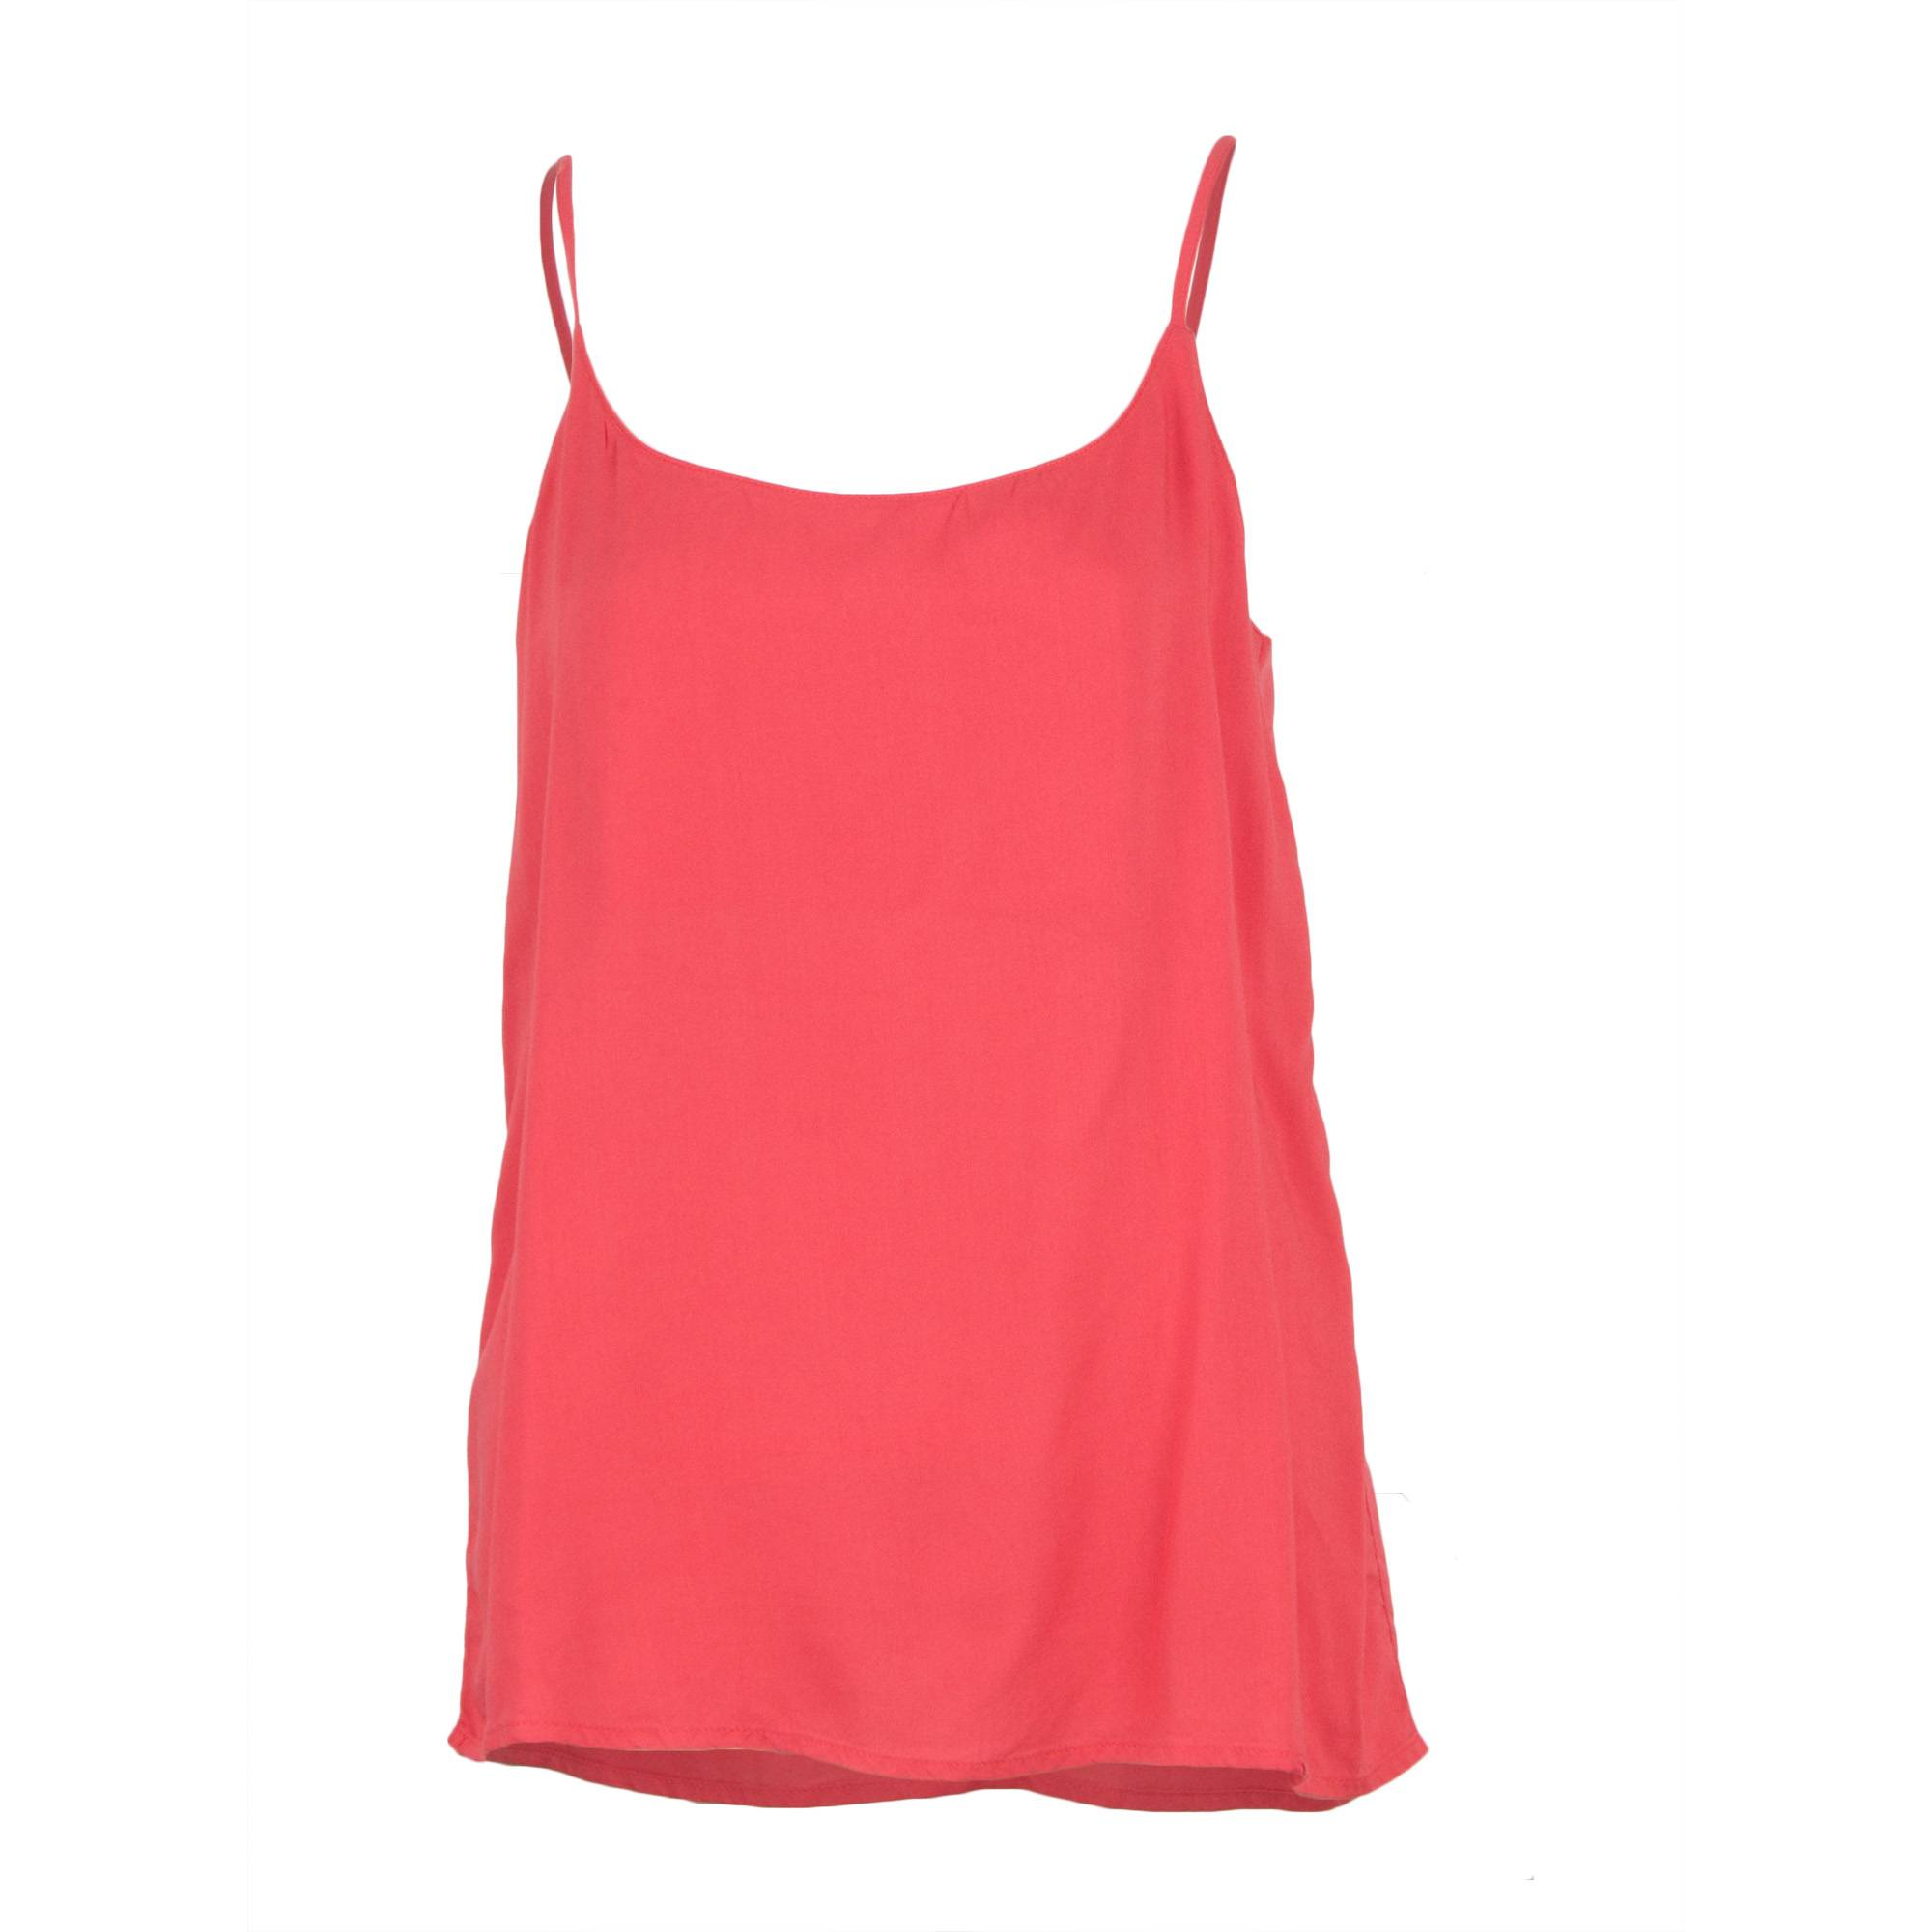 2209d901c09eb3 ONLY - Women s onIGeggo Singlet Tank Top. Coral. Loading zoom